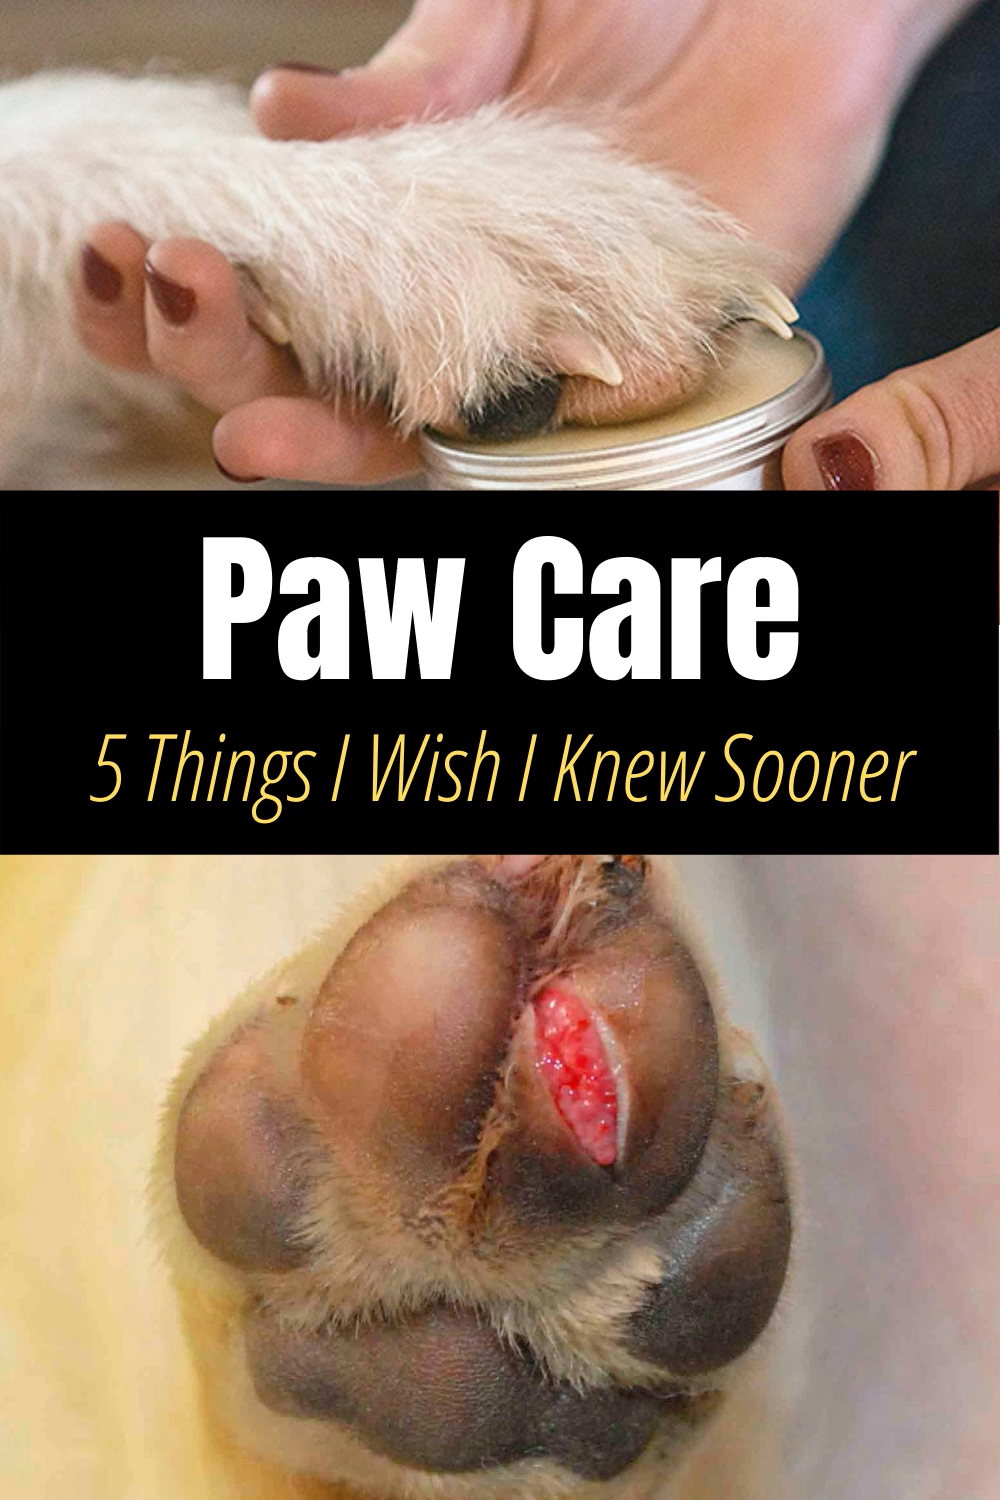 5 Paw Care Tips You D Wish You D Known Sooner Video In 2020 Paw Care Dog Paw Pads Dog Paw Care